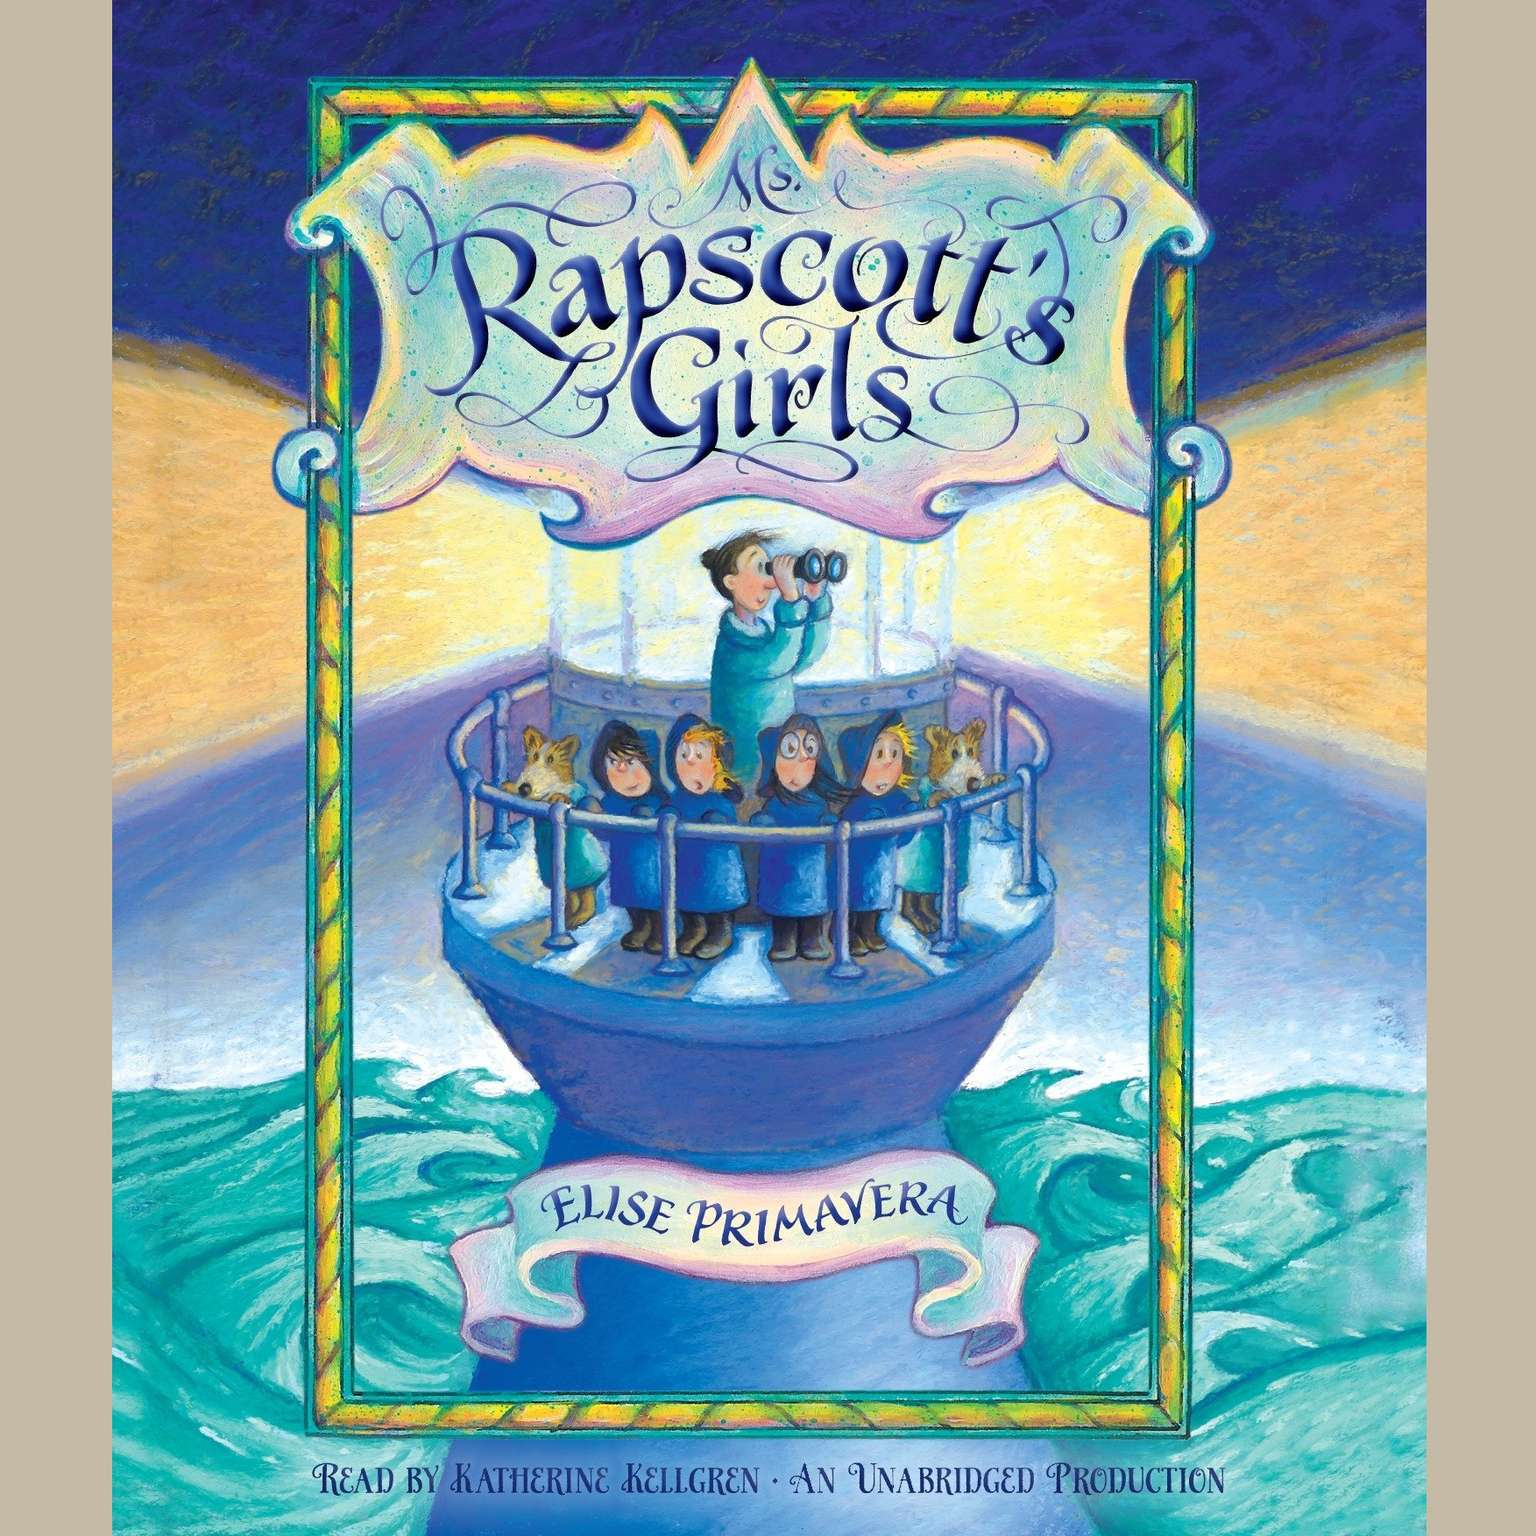 Printable Ms. Rapscott's Girls Audiobook Cover Art